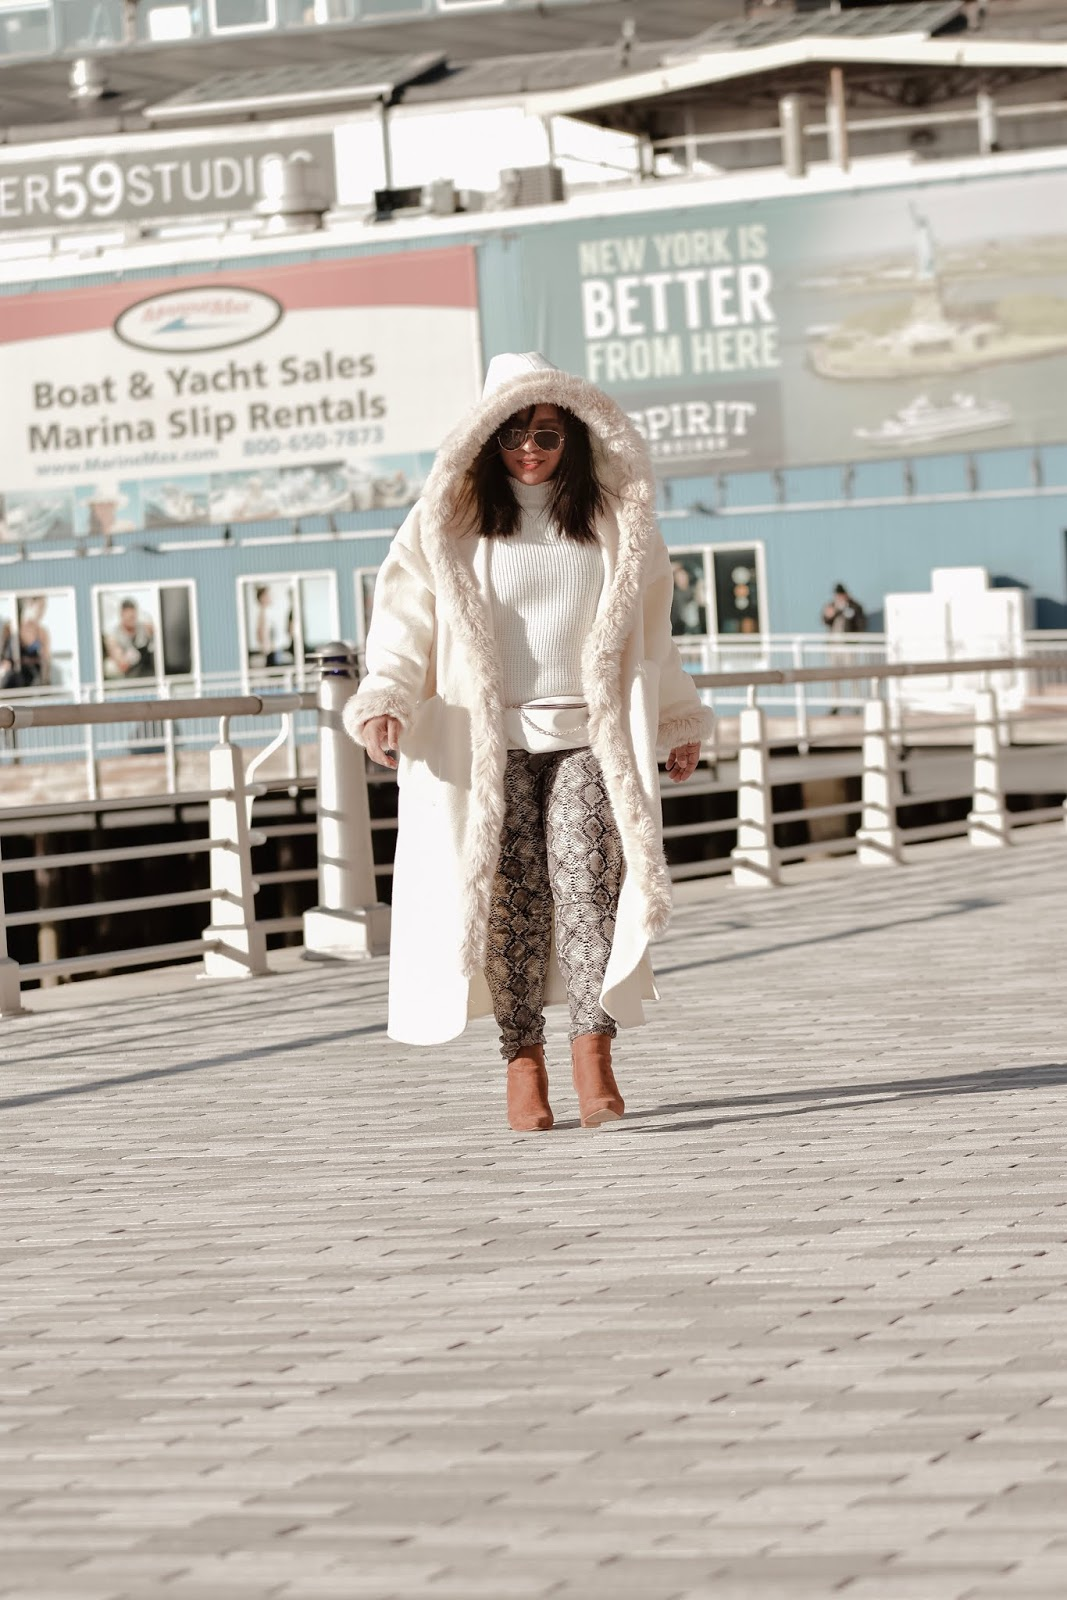 nyfw, nyfw streetstyle, pier 59, fashion week, nyc bloggers, nyfw2019